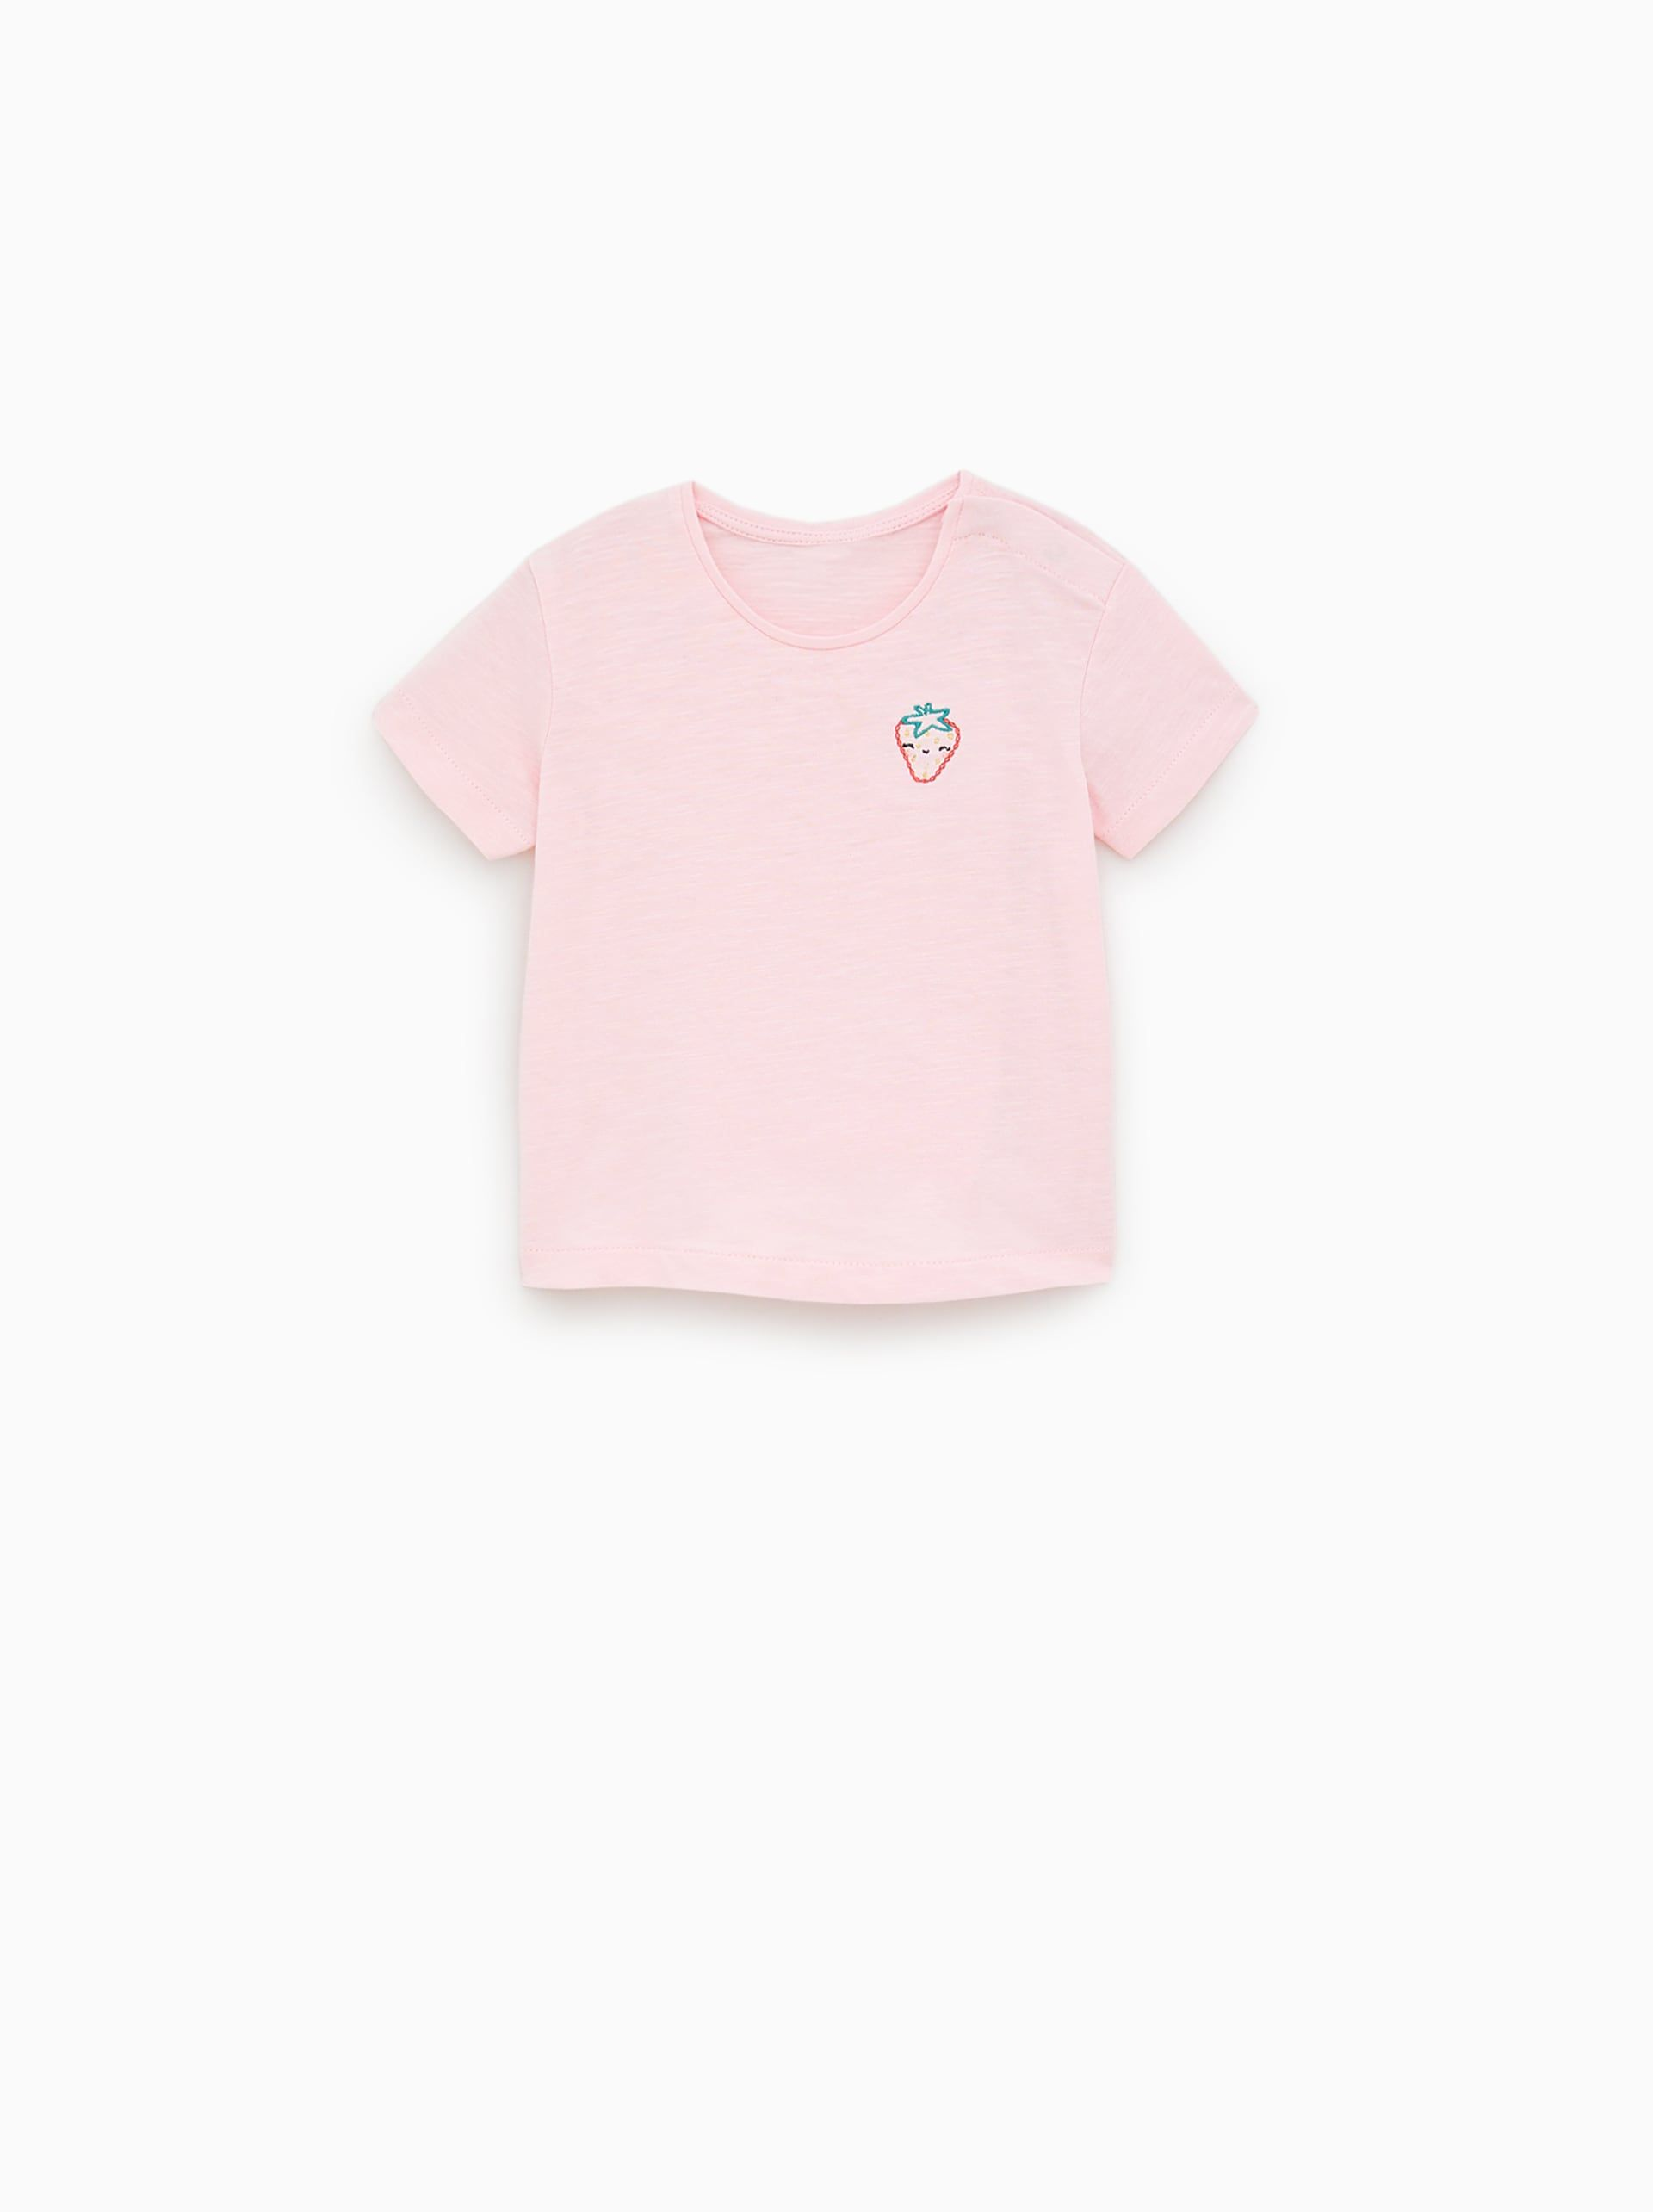 EMBROIDERED T - SHIRT-View All-T-SHIRTS-BABY GIRL  b88d3d72c3120